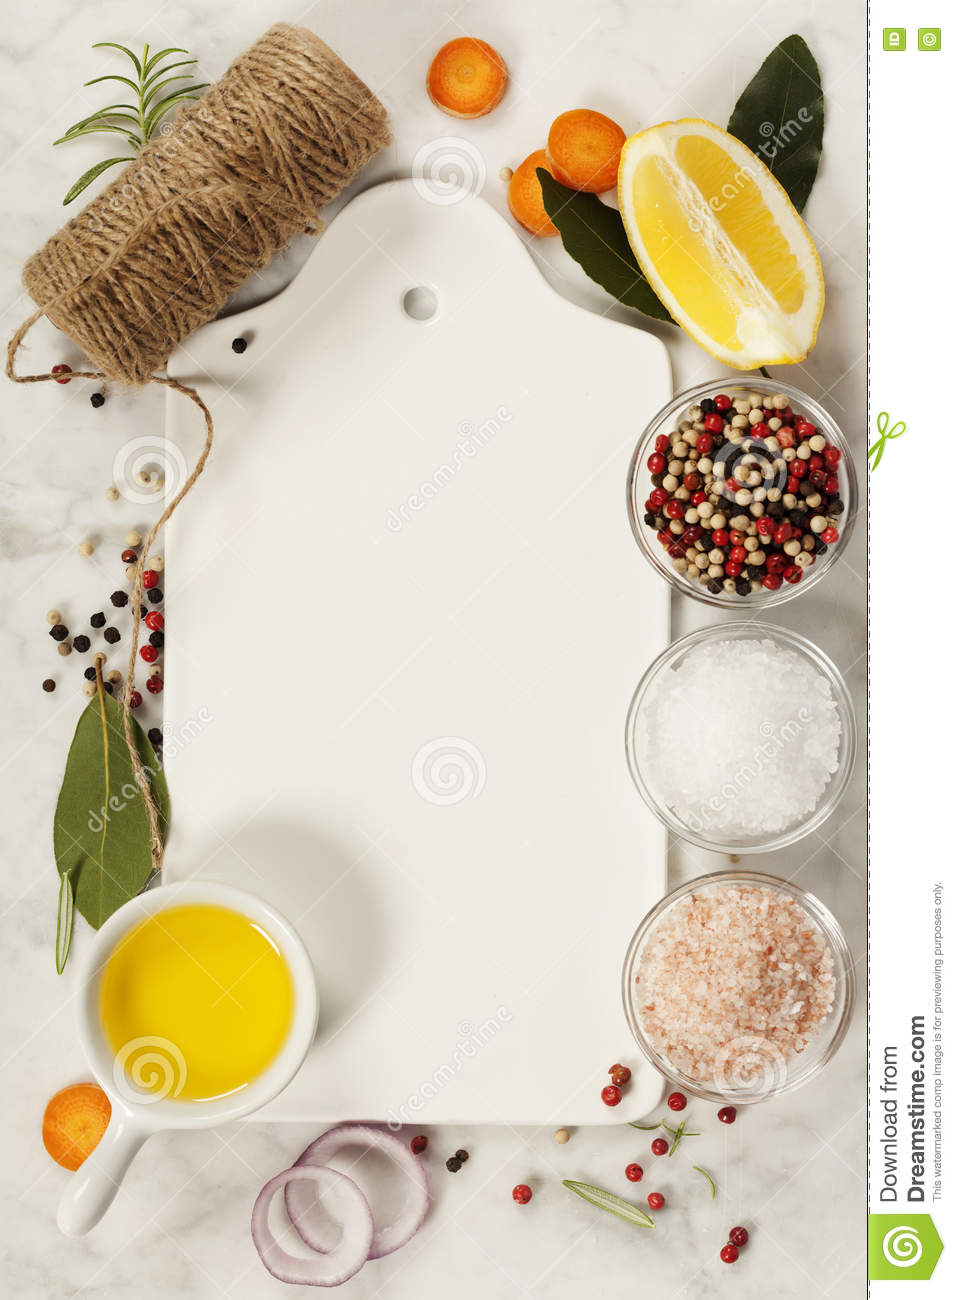 Ingredients for cooking fish and seafood on marble background stock photo image 71442780 - Foods never wash cooking ...